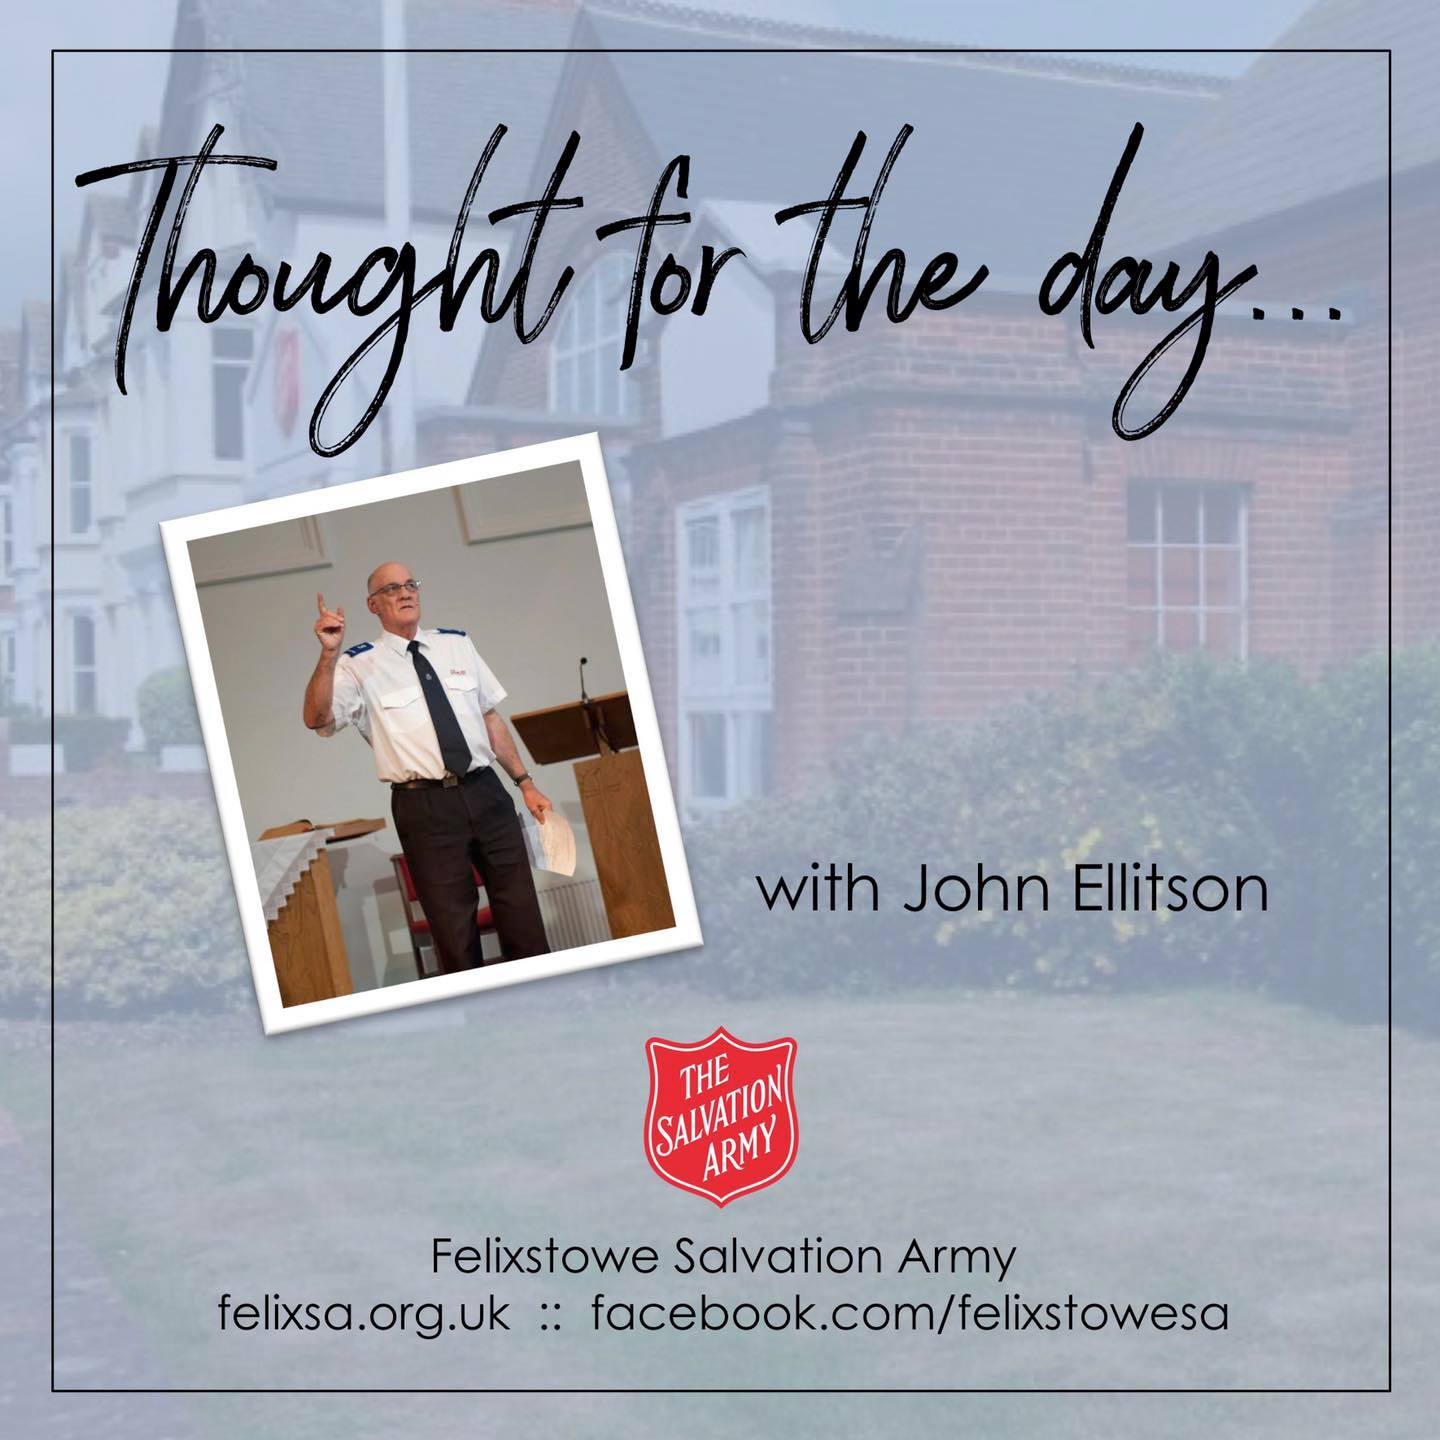 Thought for the Day with John Ellitson